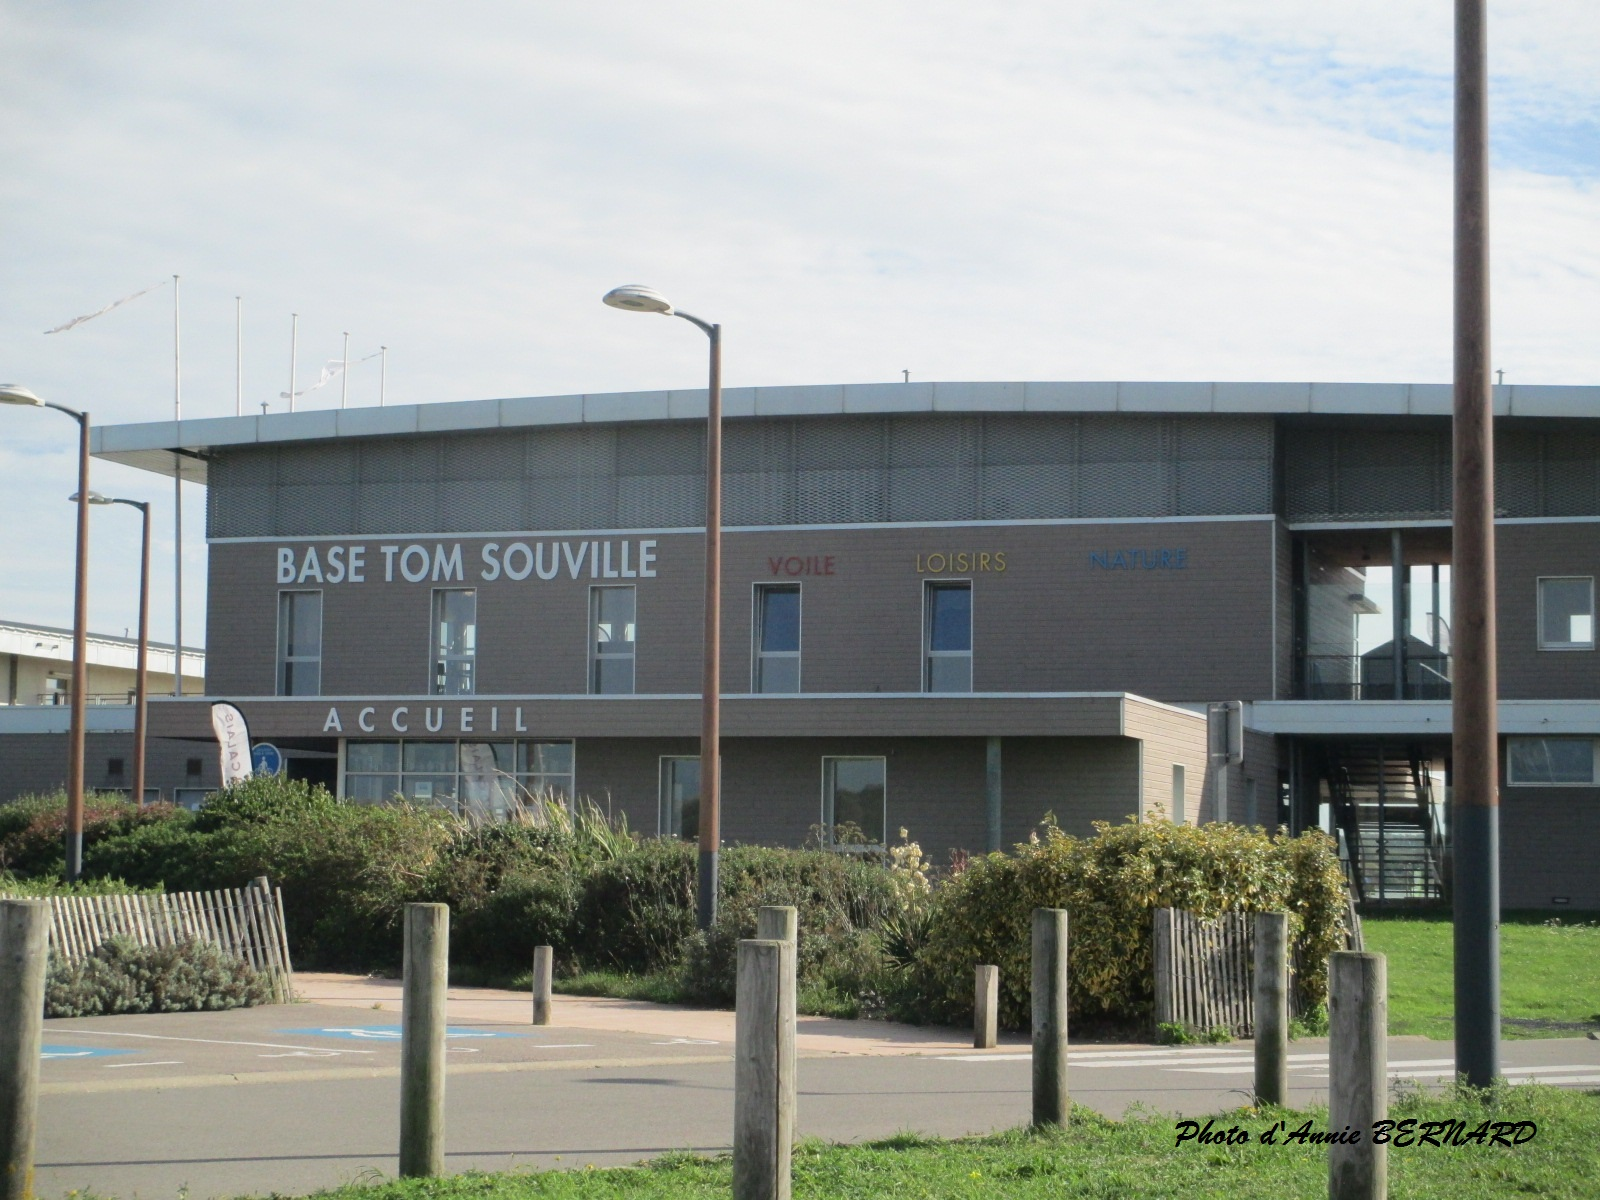 Base Tom Souville